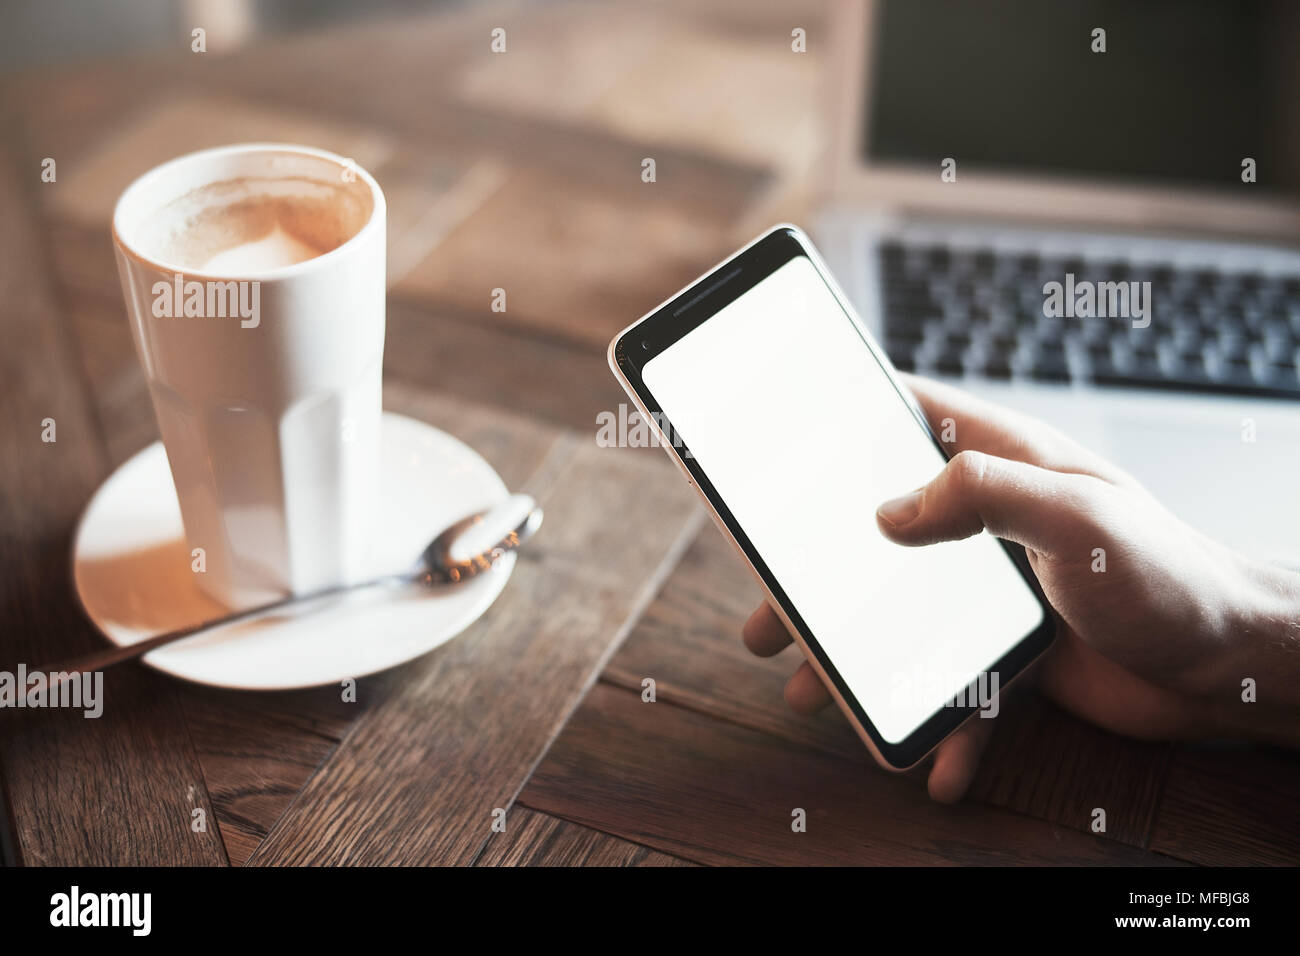 Young man with tattoo holding mobile phone and working on laptop in co-working. Mans hand and phone are on foreground and on focus. - Stock Image